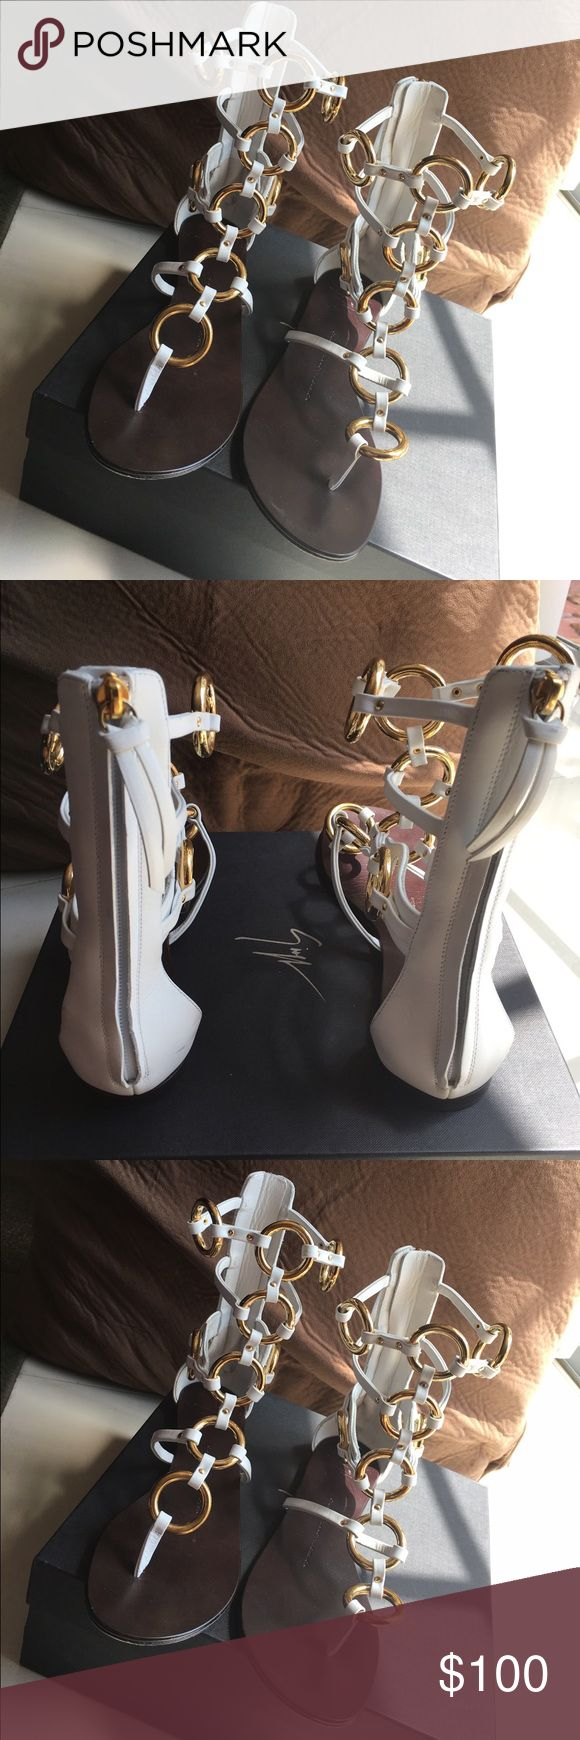 Giuseppe Zanotti: Gladiator Sandal White . Gently worn / with box and bag . Perfect for spring and summer . Final sale / no Trade no return . Giuseppe Zanotti Shoes Sandals